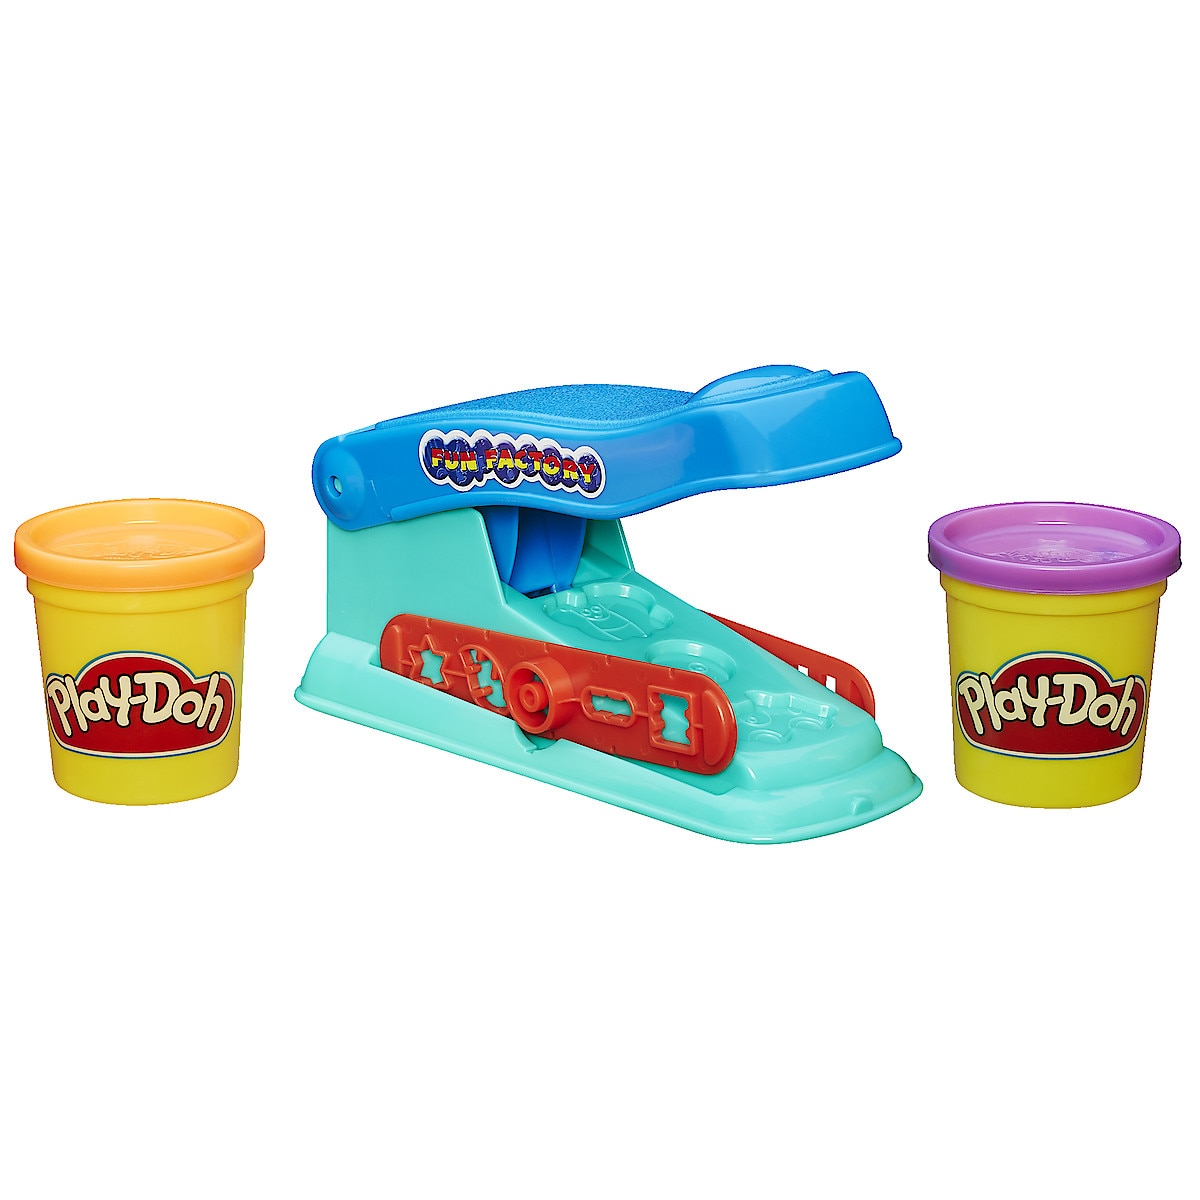 Knete Play-Doh Fun Factory